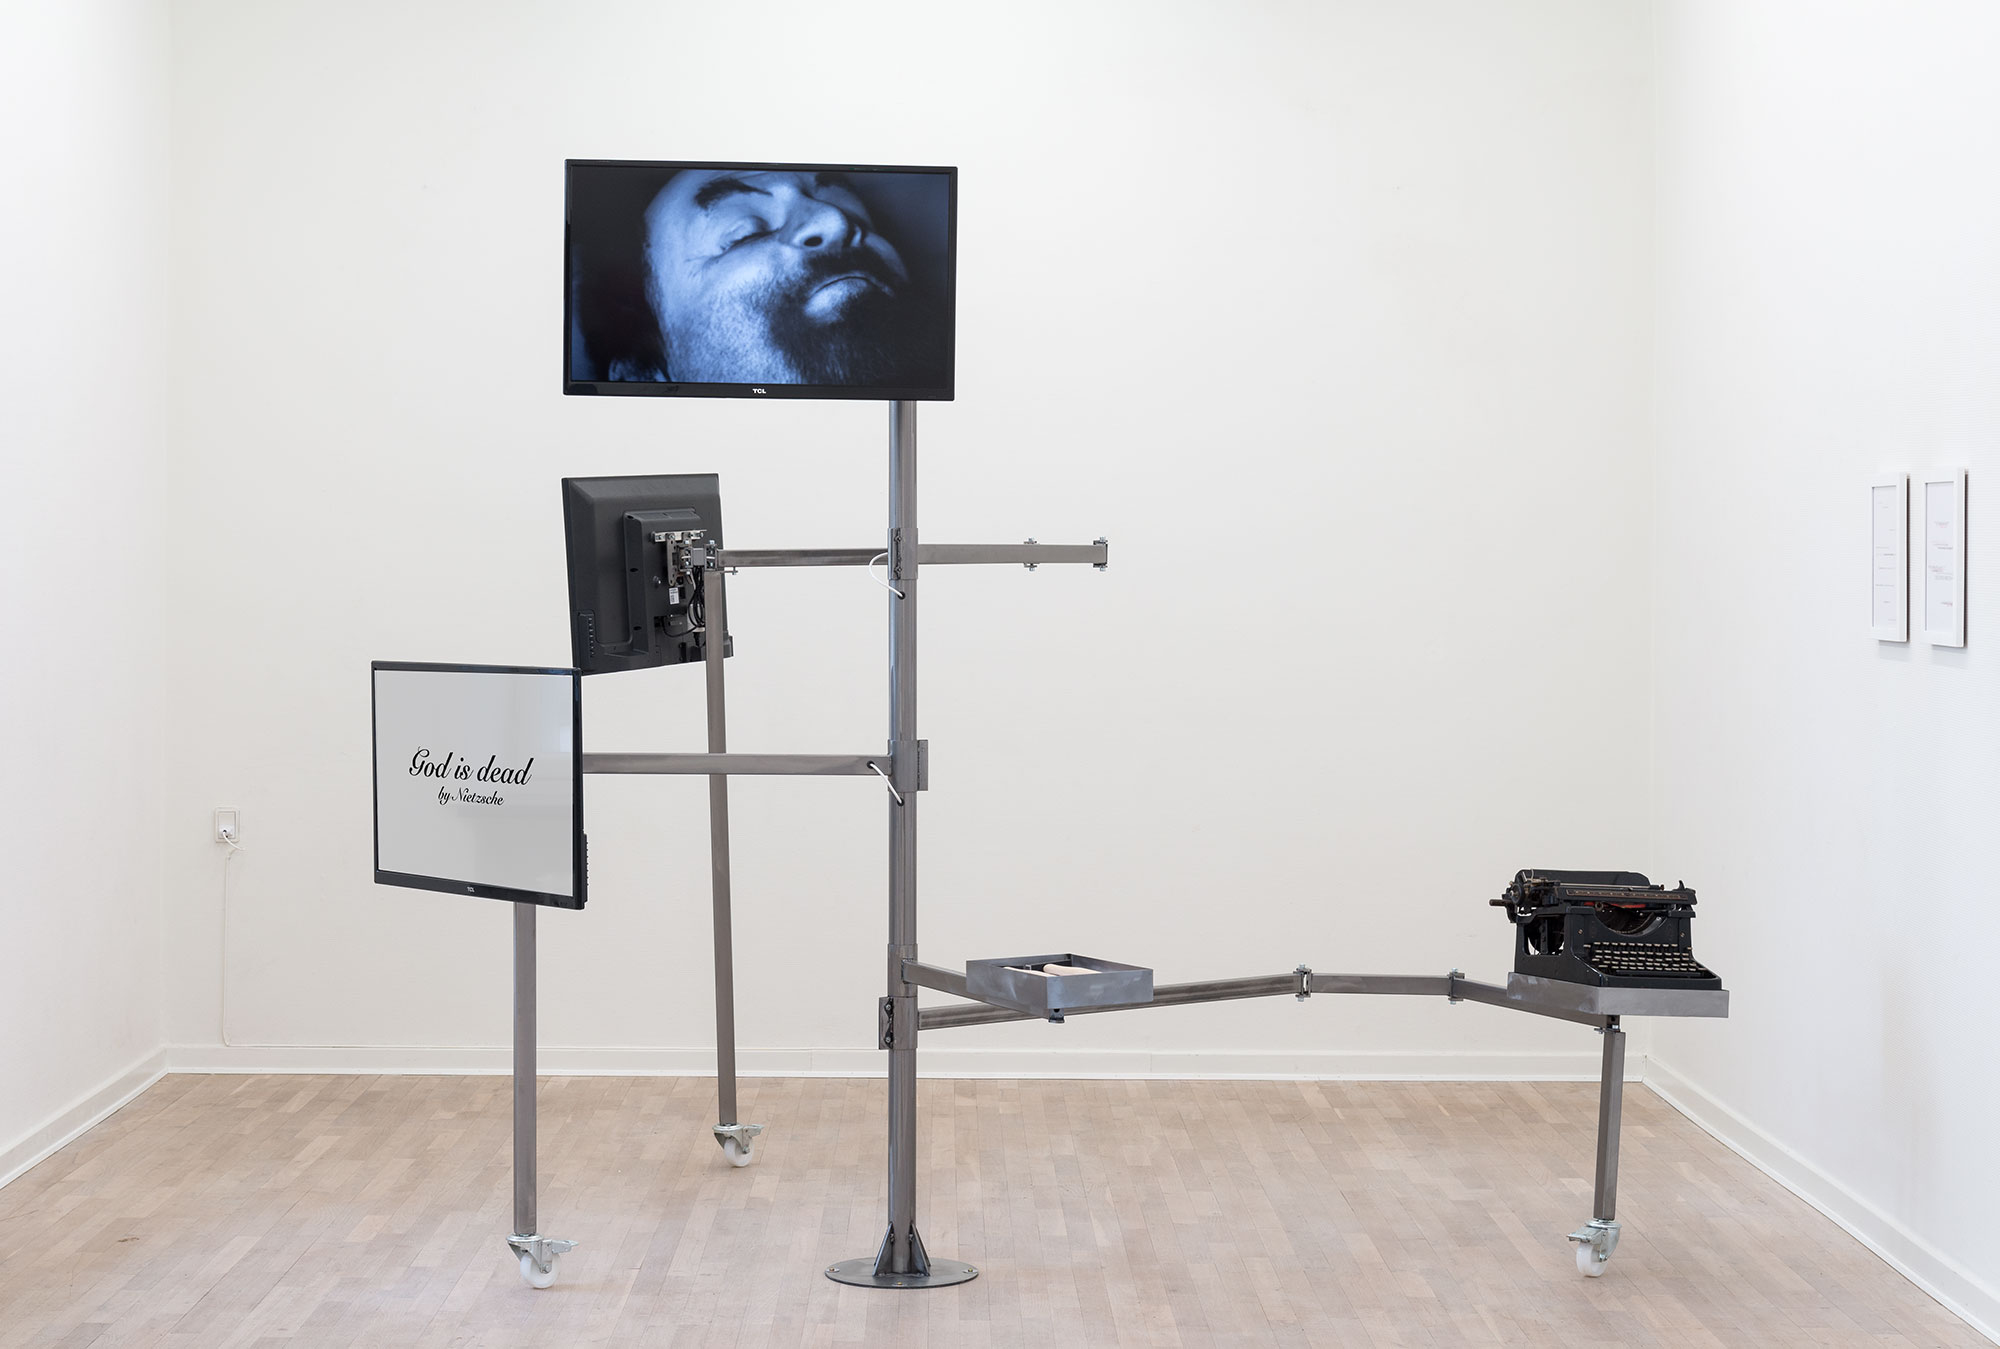 Deconstruction Structure N°1 , 2013-2014, Typewriter, hammers, A4 paper on office desk, video on flatscreen, Bilboquet game, typed sheets.Courtesy of the artist and Goodman Gallery, Johannesburg-Cape Town.Exhibition view from Merchant of Dreams.Photo credit : Viborg Kunsthal